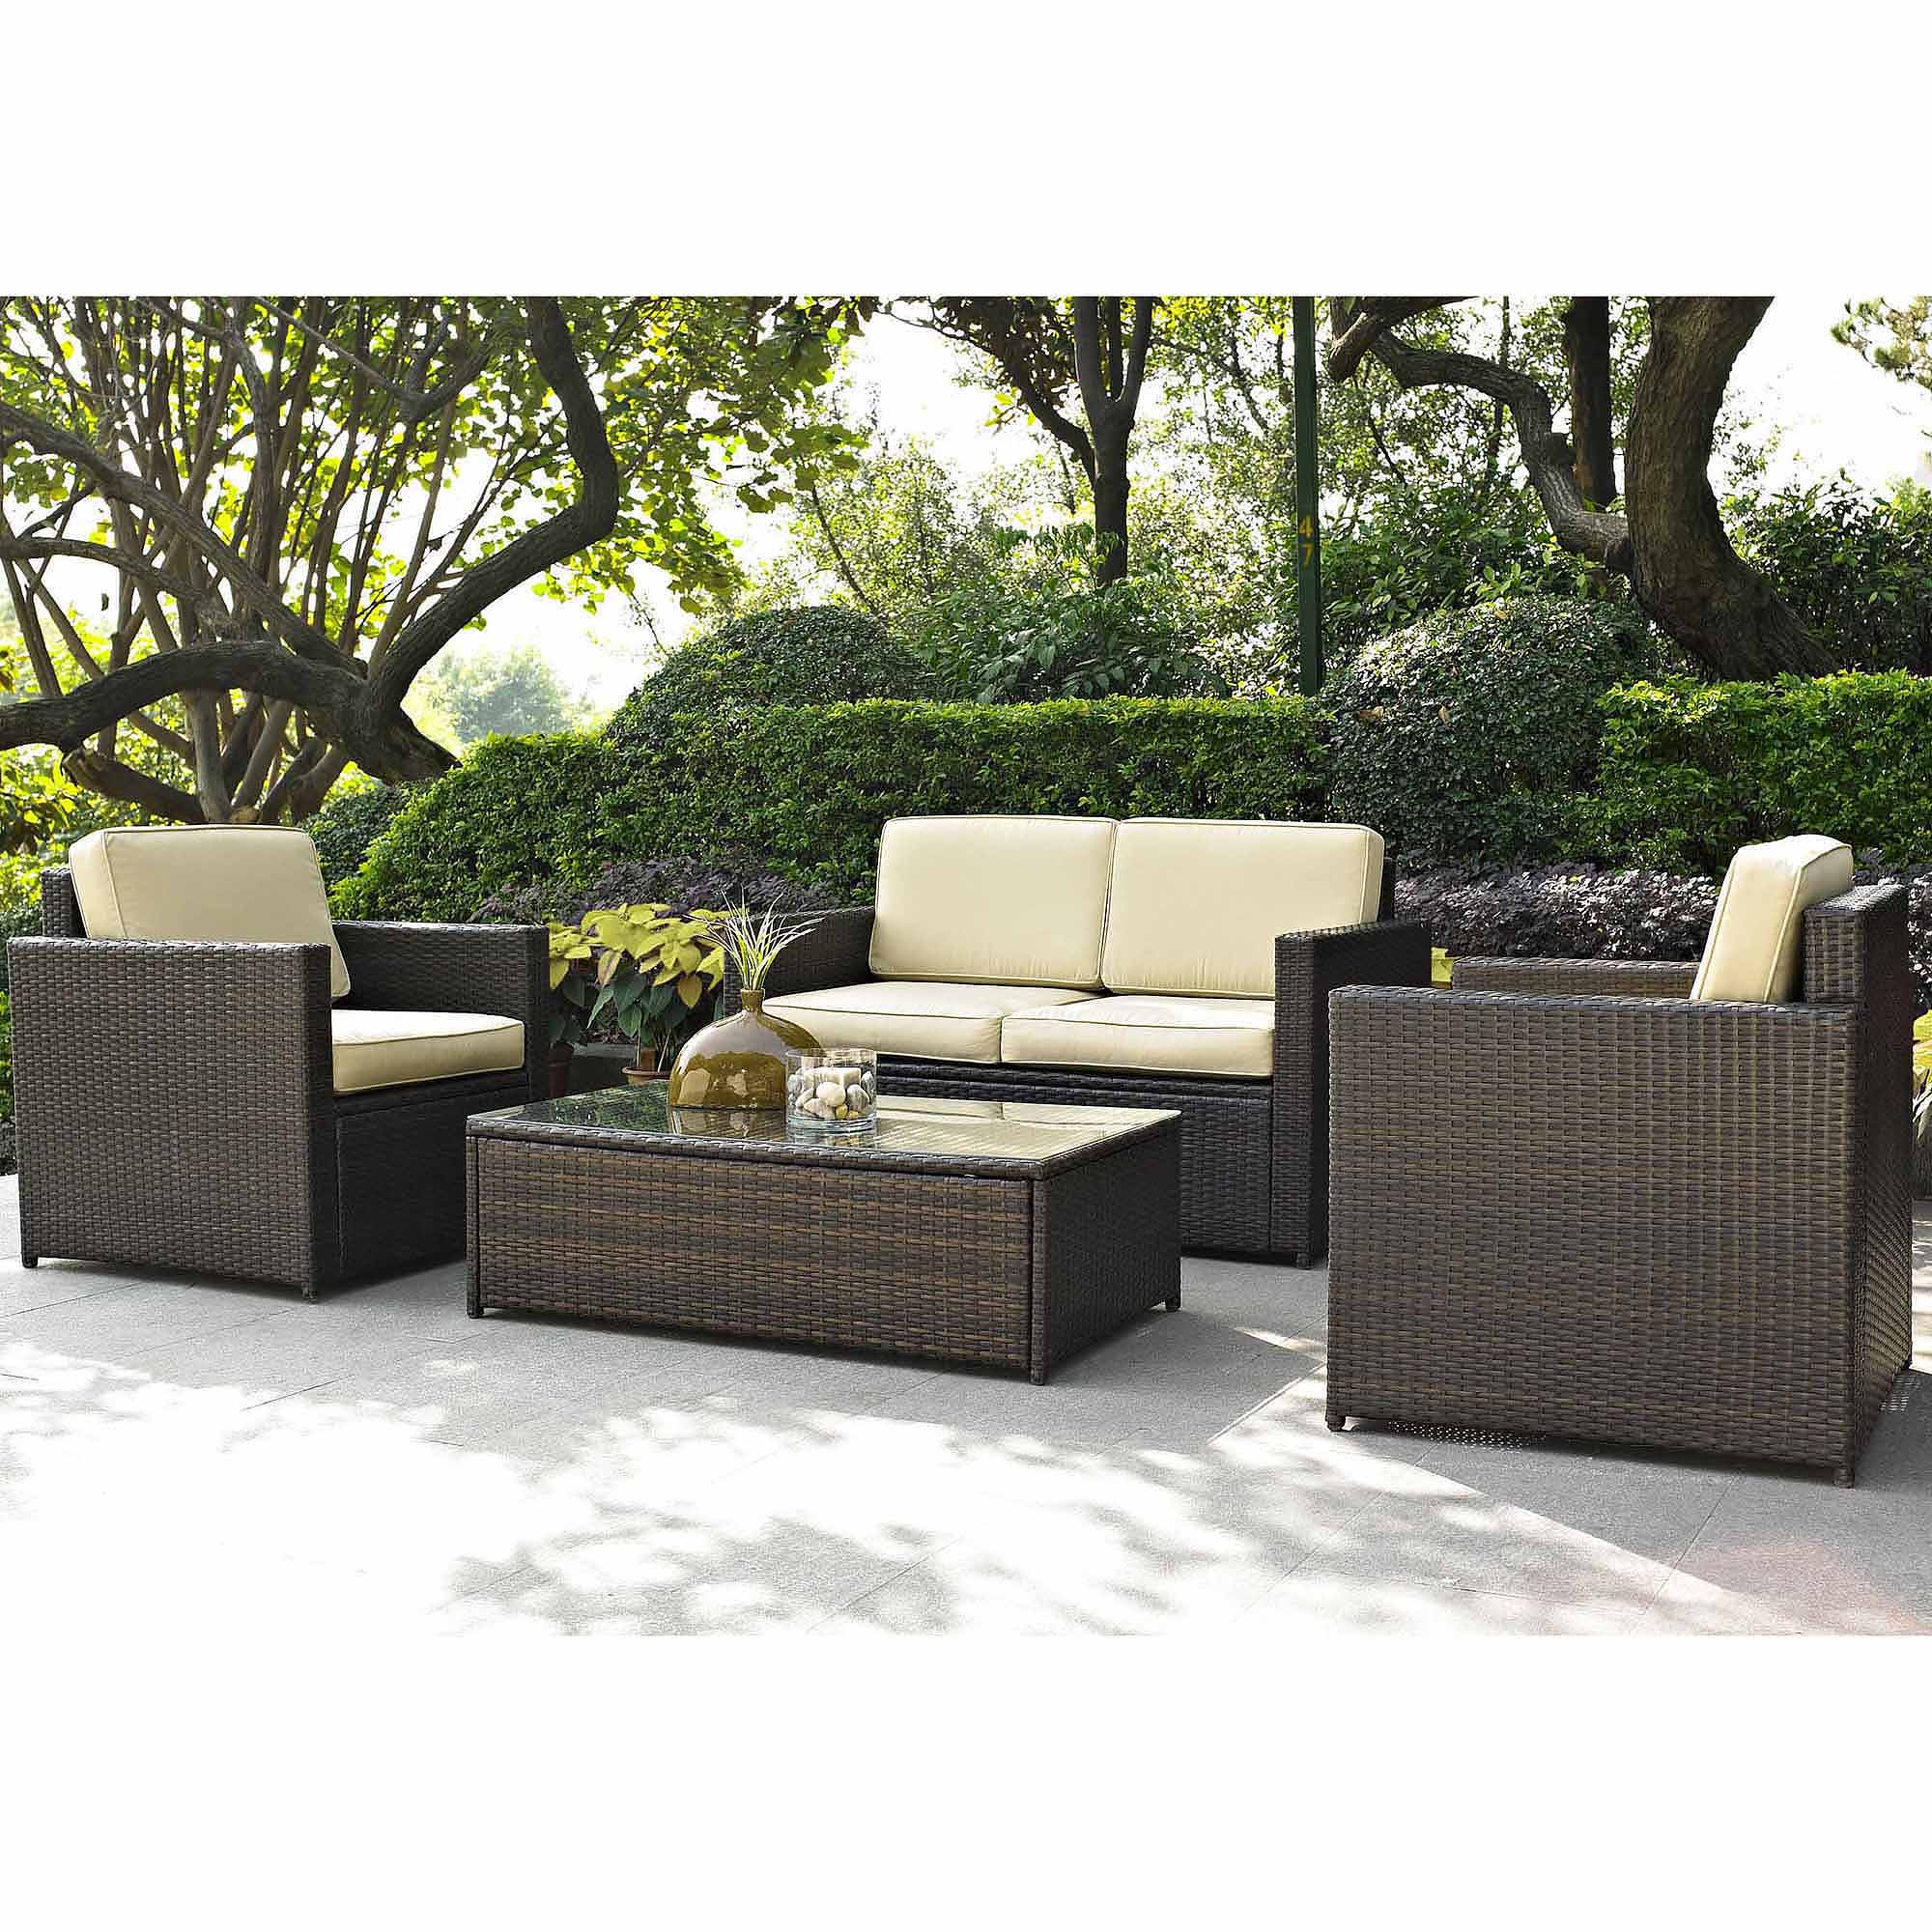 patio furniture costway 4 pcs cushioned wicker patio sofa furniture set garden lawn seat DUPNGDX